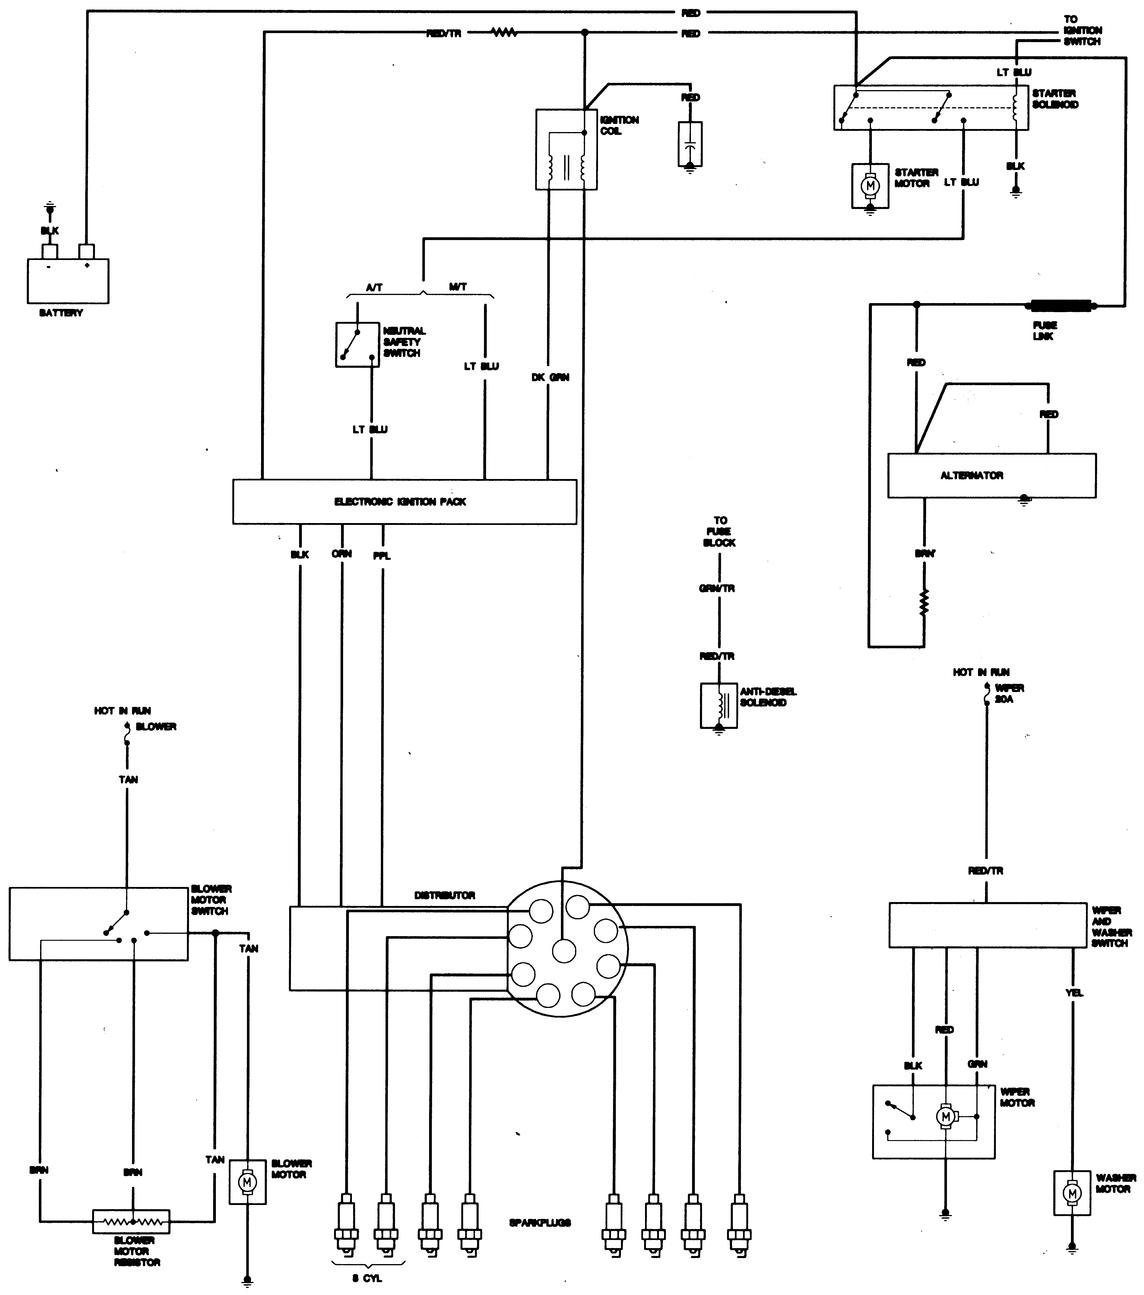 jeep cj 5 304 engine diagram  jeep  free engine image for